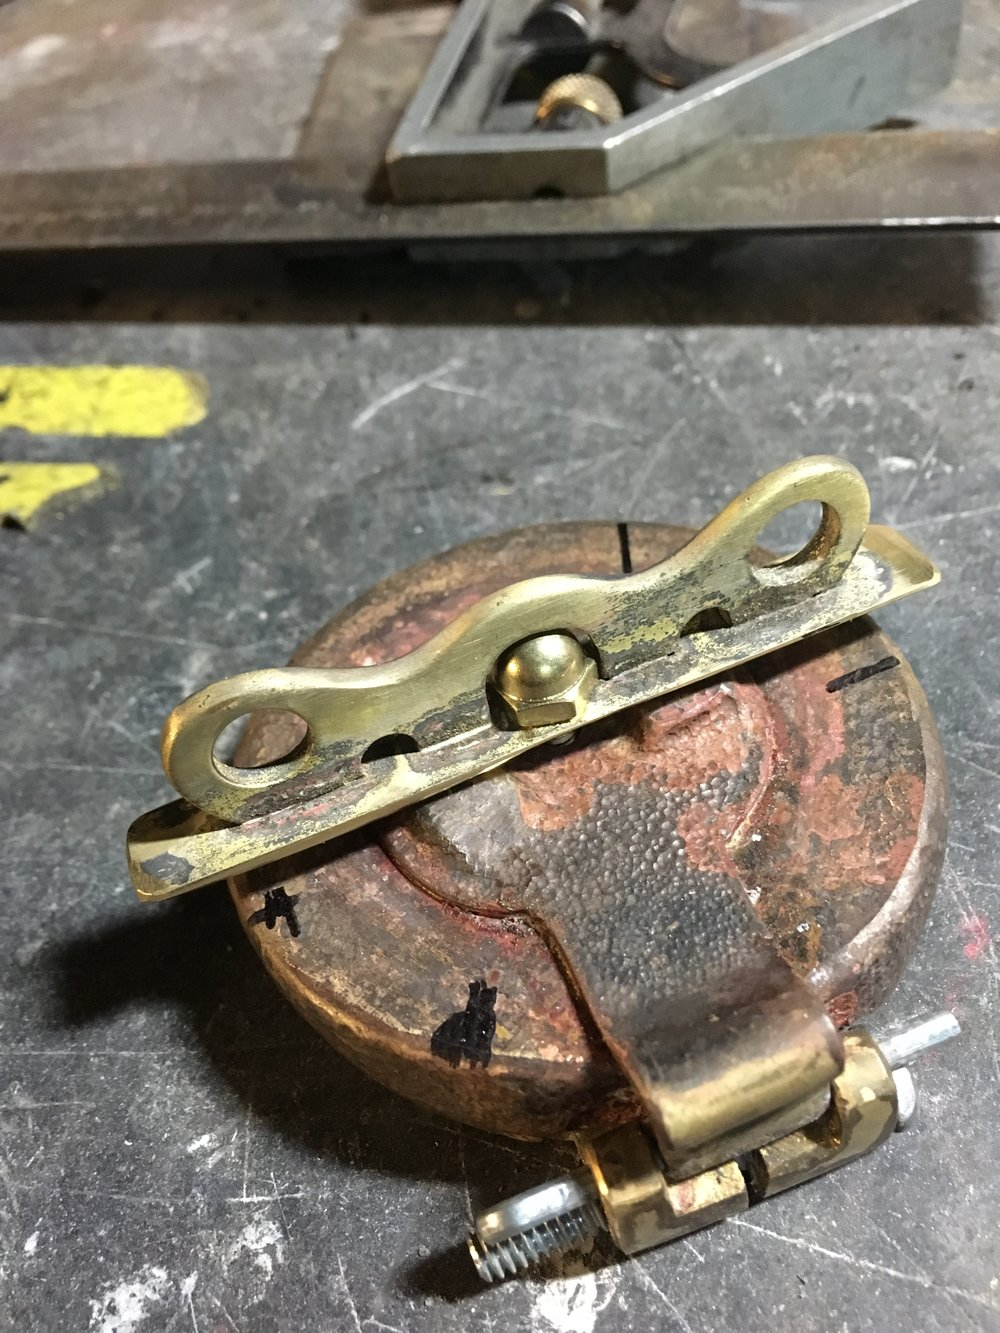 The lower half of the hinge was made from brass billet and soldered to a ring that clamps tightly to the filler neck. There are blocks of brass soldered inside the ring to rest on the edges of the tank neck where the regular cap grips it. There will be a little more shaping of the locking lever, and the patina of the cap will be made a little more uniform.